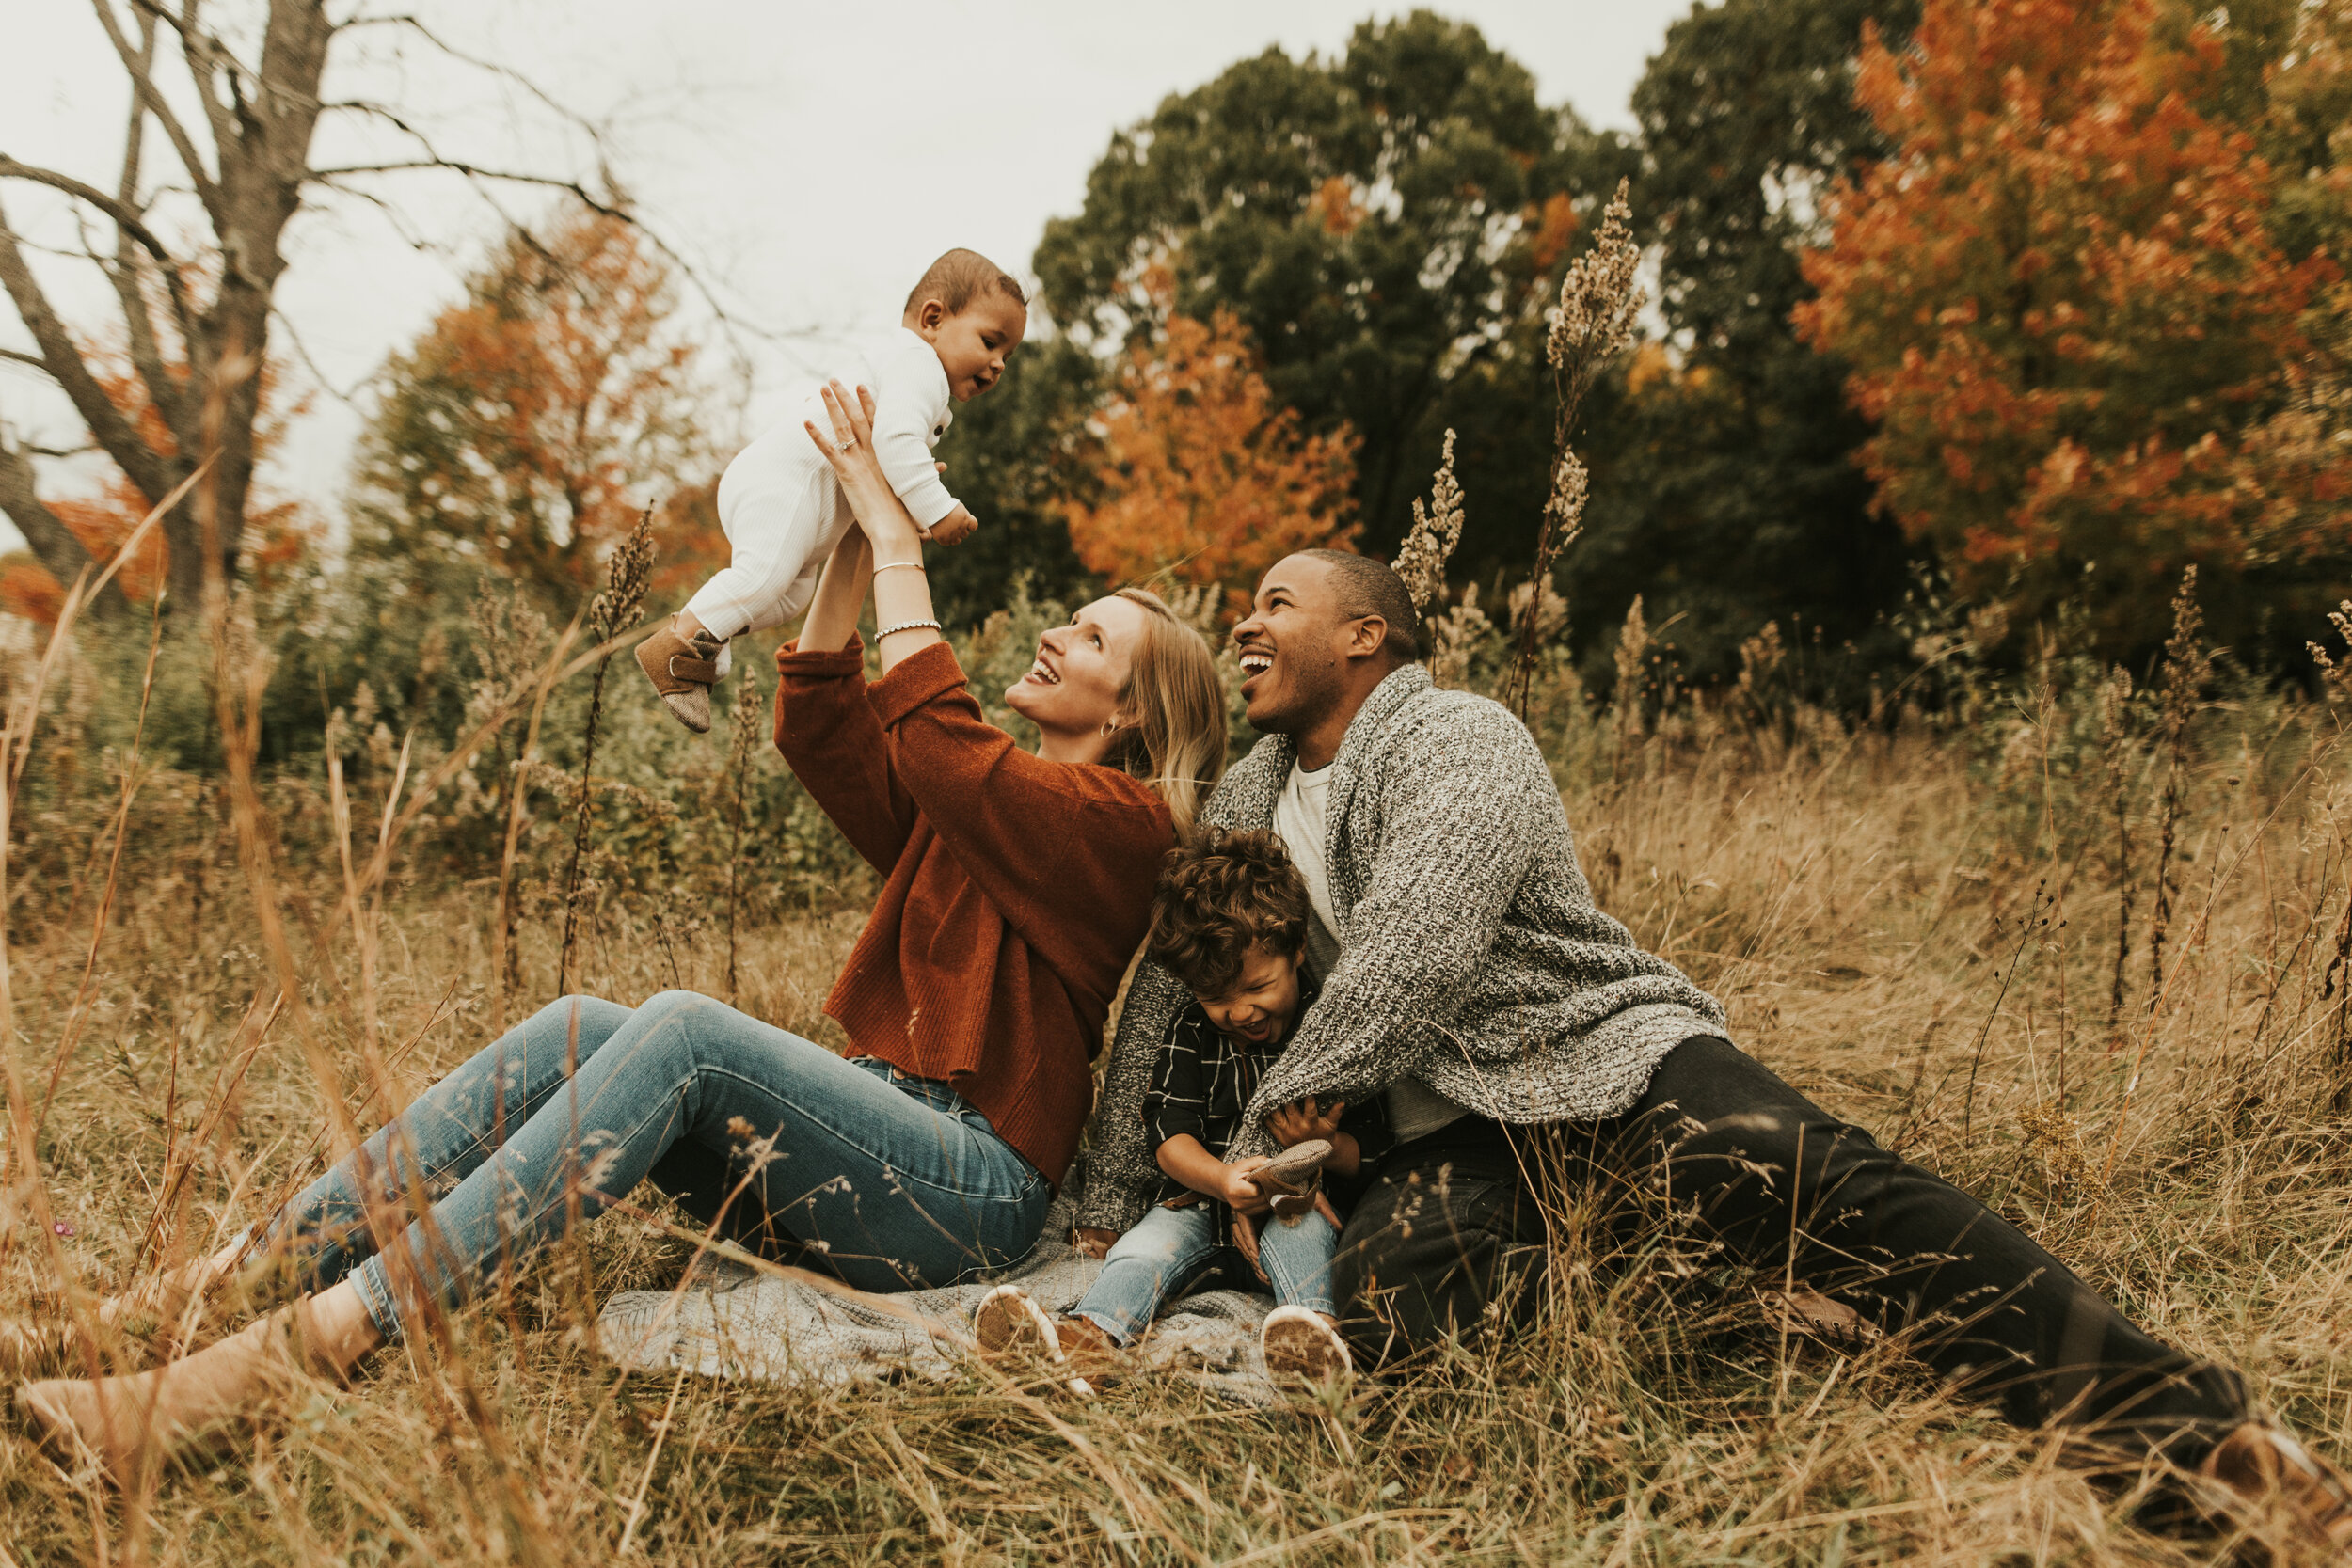 JacksonFamily_Autumn2019_77.jpg